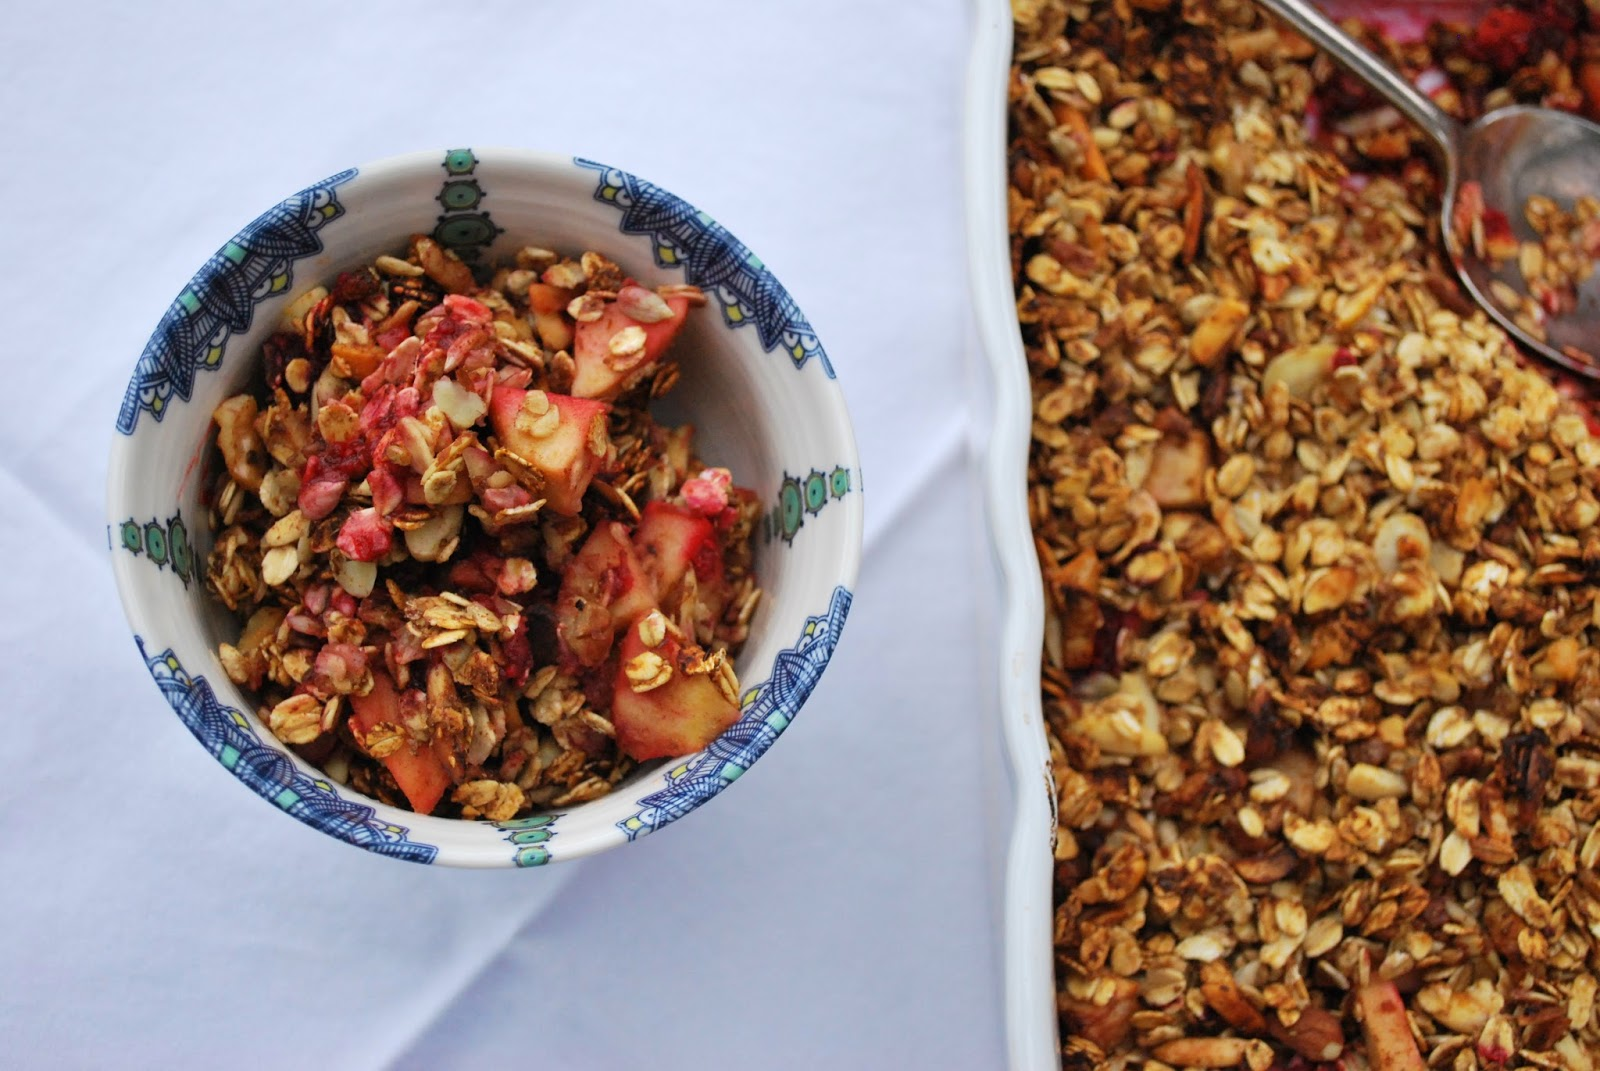 {Raspberry & Apple Granola Crumble} Raspberries and apples make a great pairing in this wholesome dessert, which only calls for a little bit of added sugar and a variety of good-for-you ingredients! Top with a scoop of Greek yogurt or serve plain for a nutritious, sweet treat.